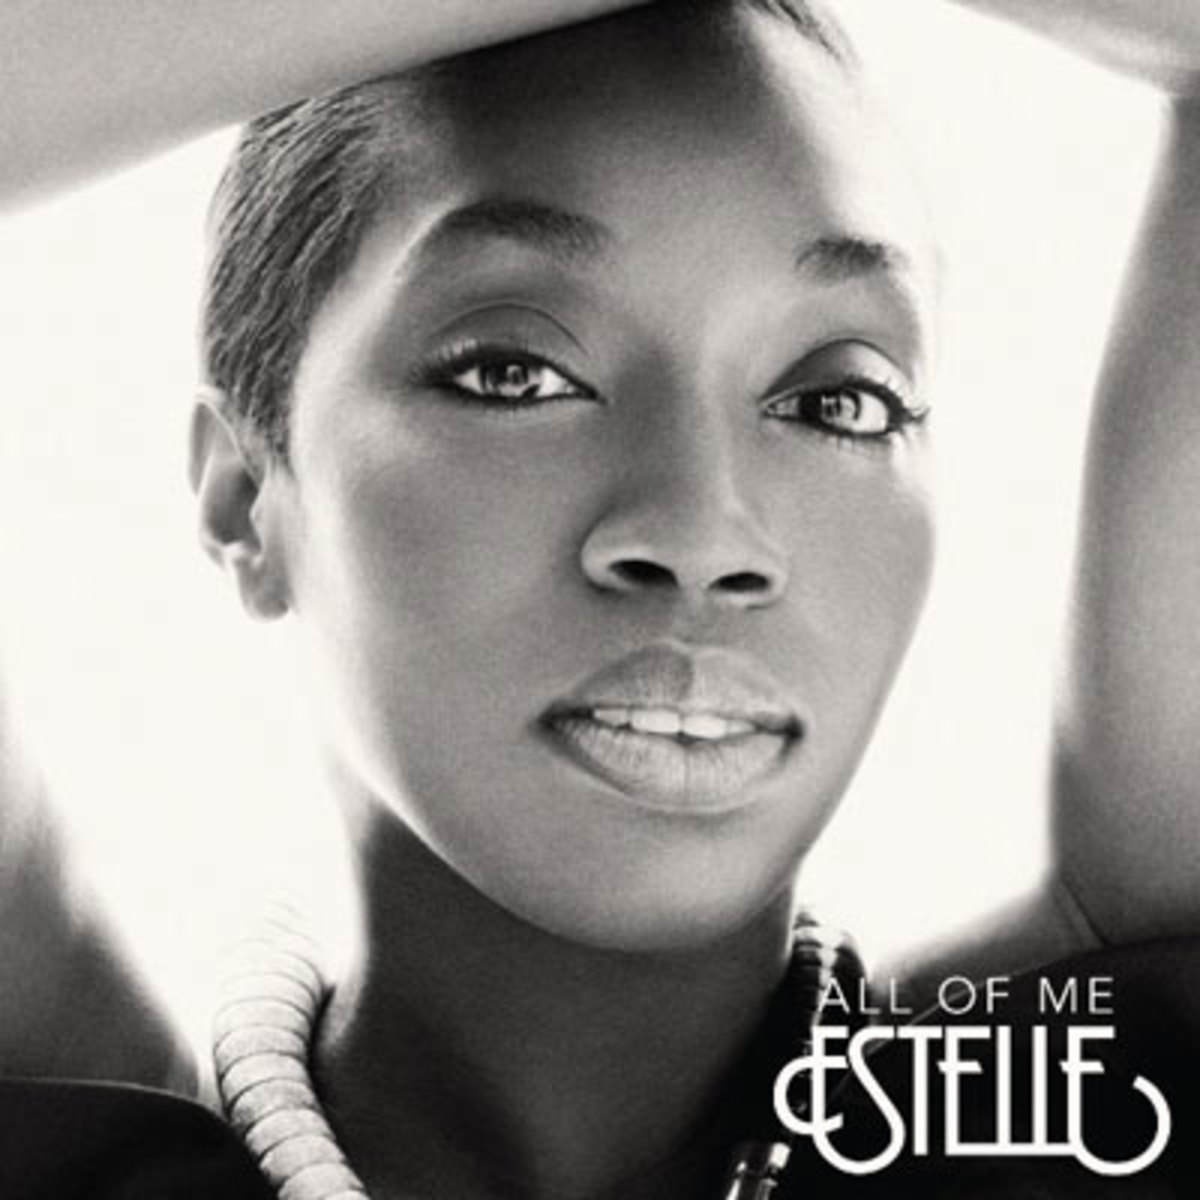 estelle-allofme.jpg